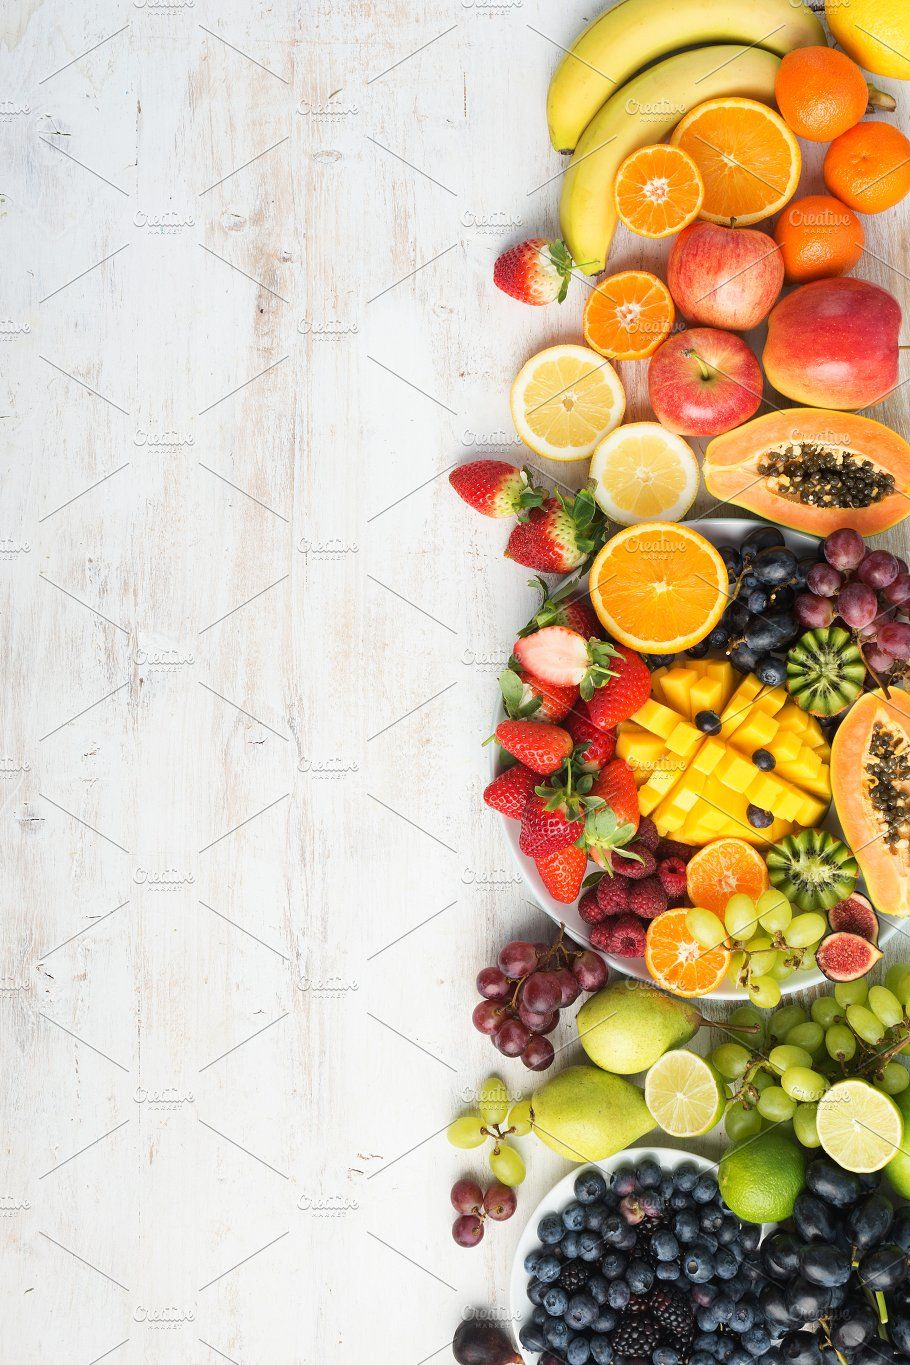 Rainbow fruits and vegetables, top view by aiselin on ...